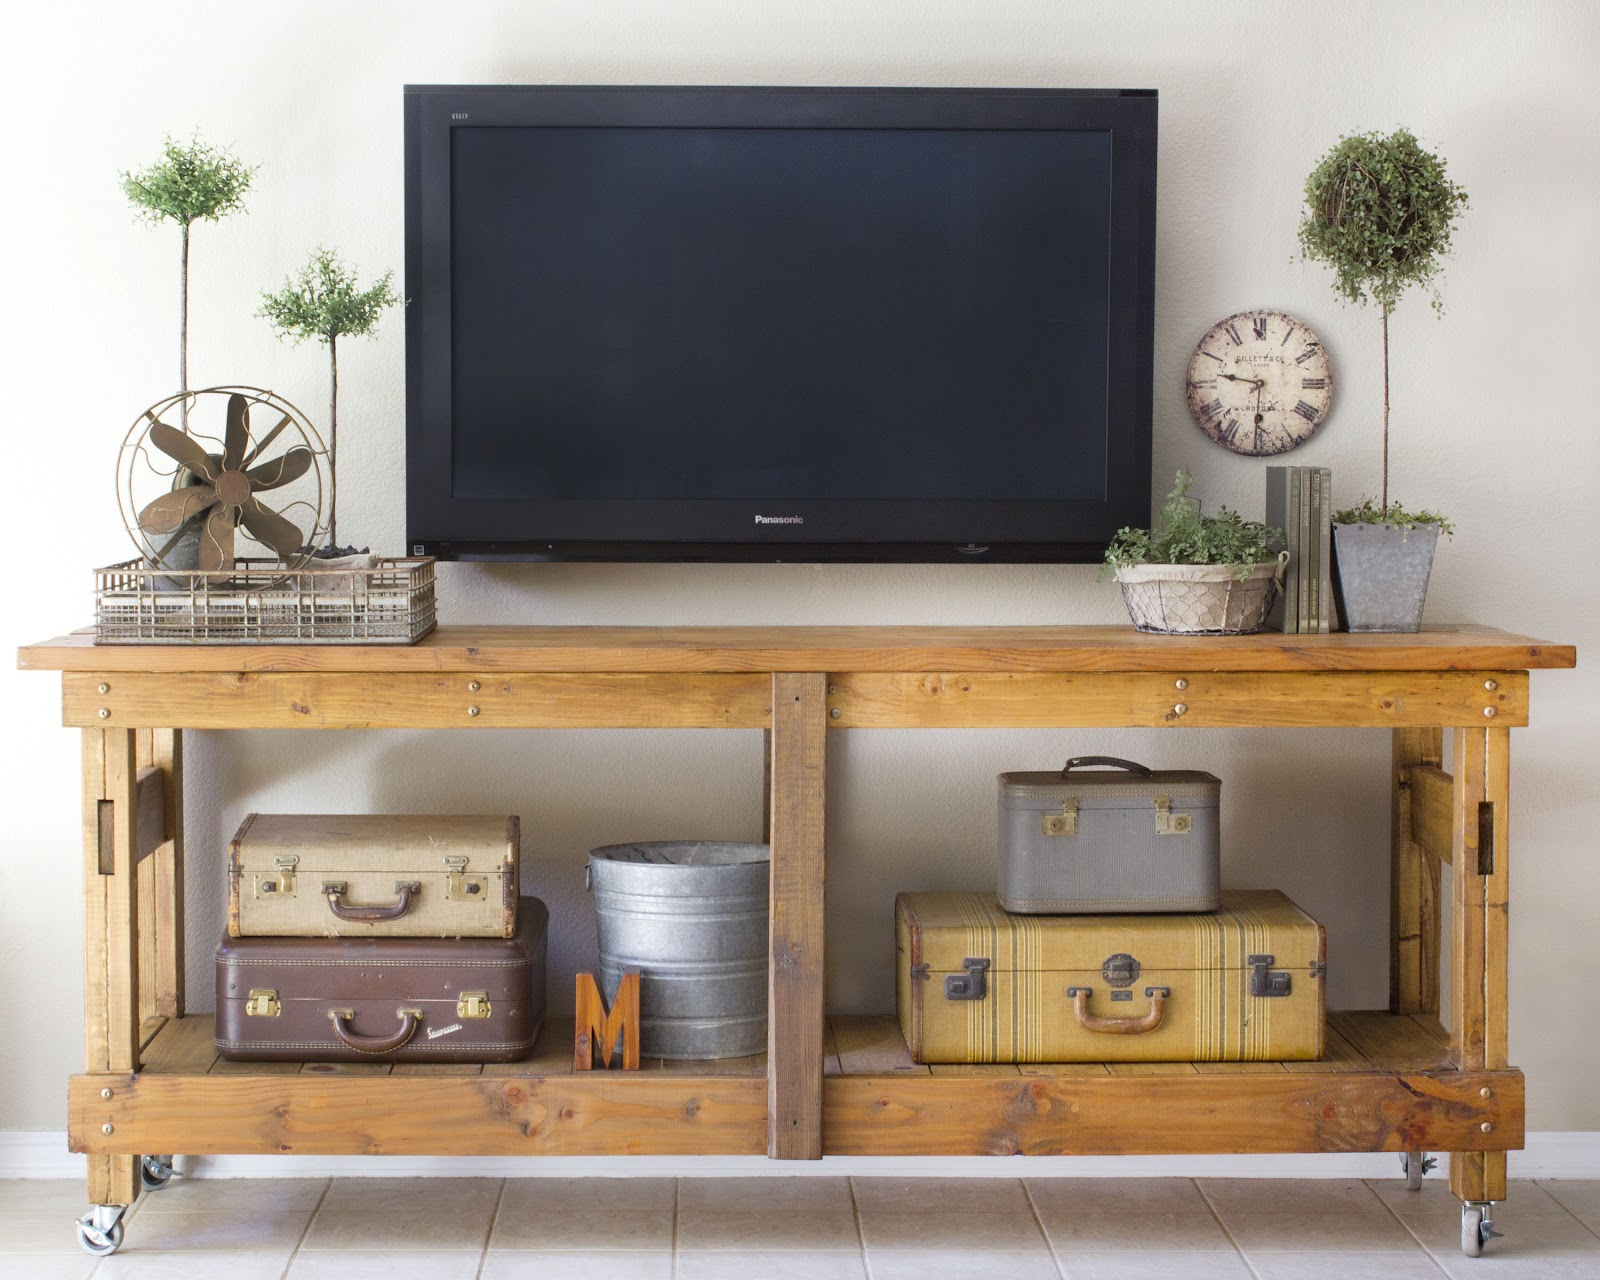 Incredible Remodelaholic 95 Ways To Hide Or Decorate Around The Tv Home Interior And Landscaping Ologienasavecom